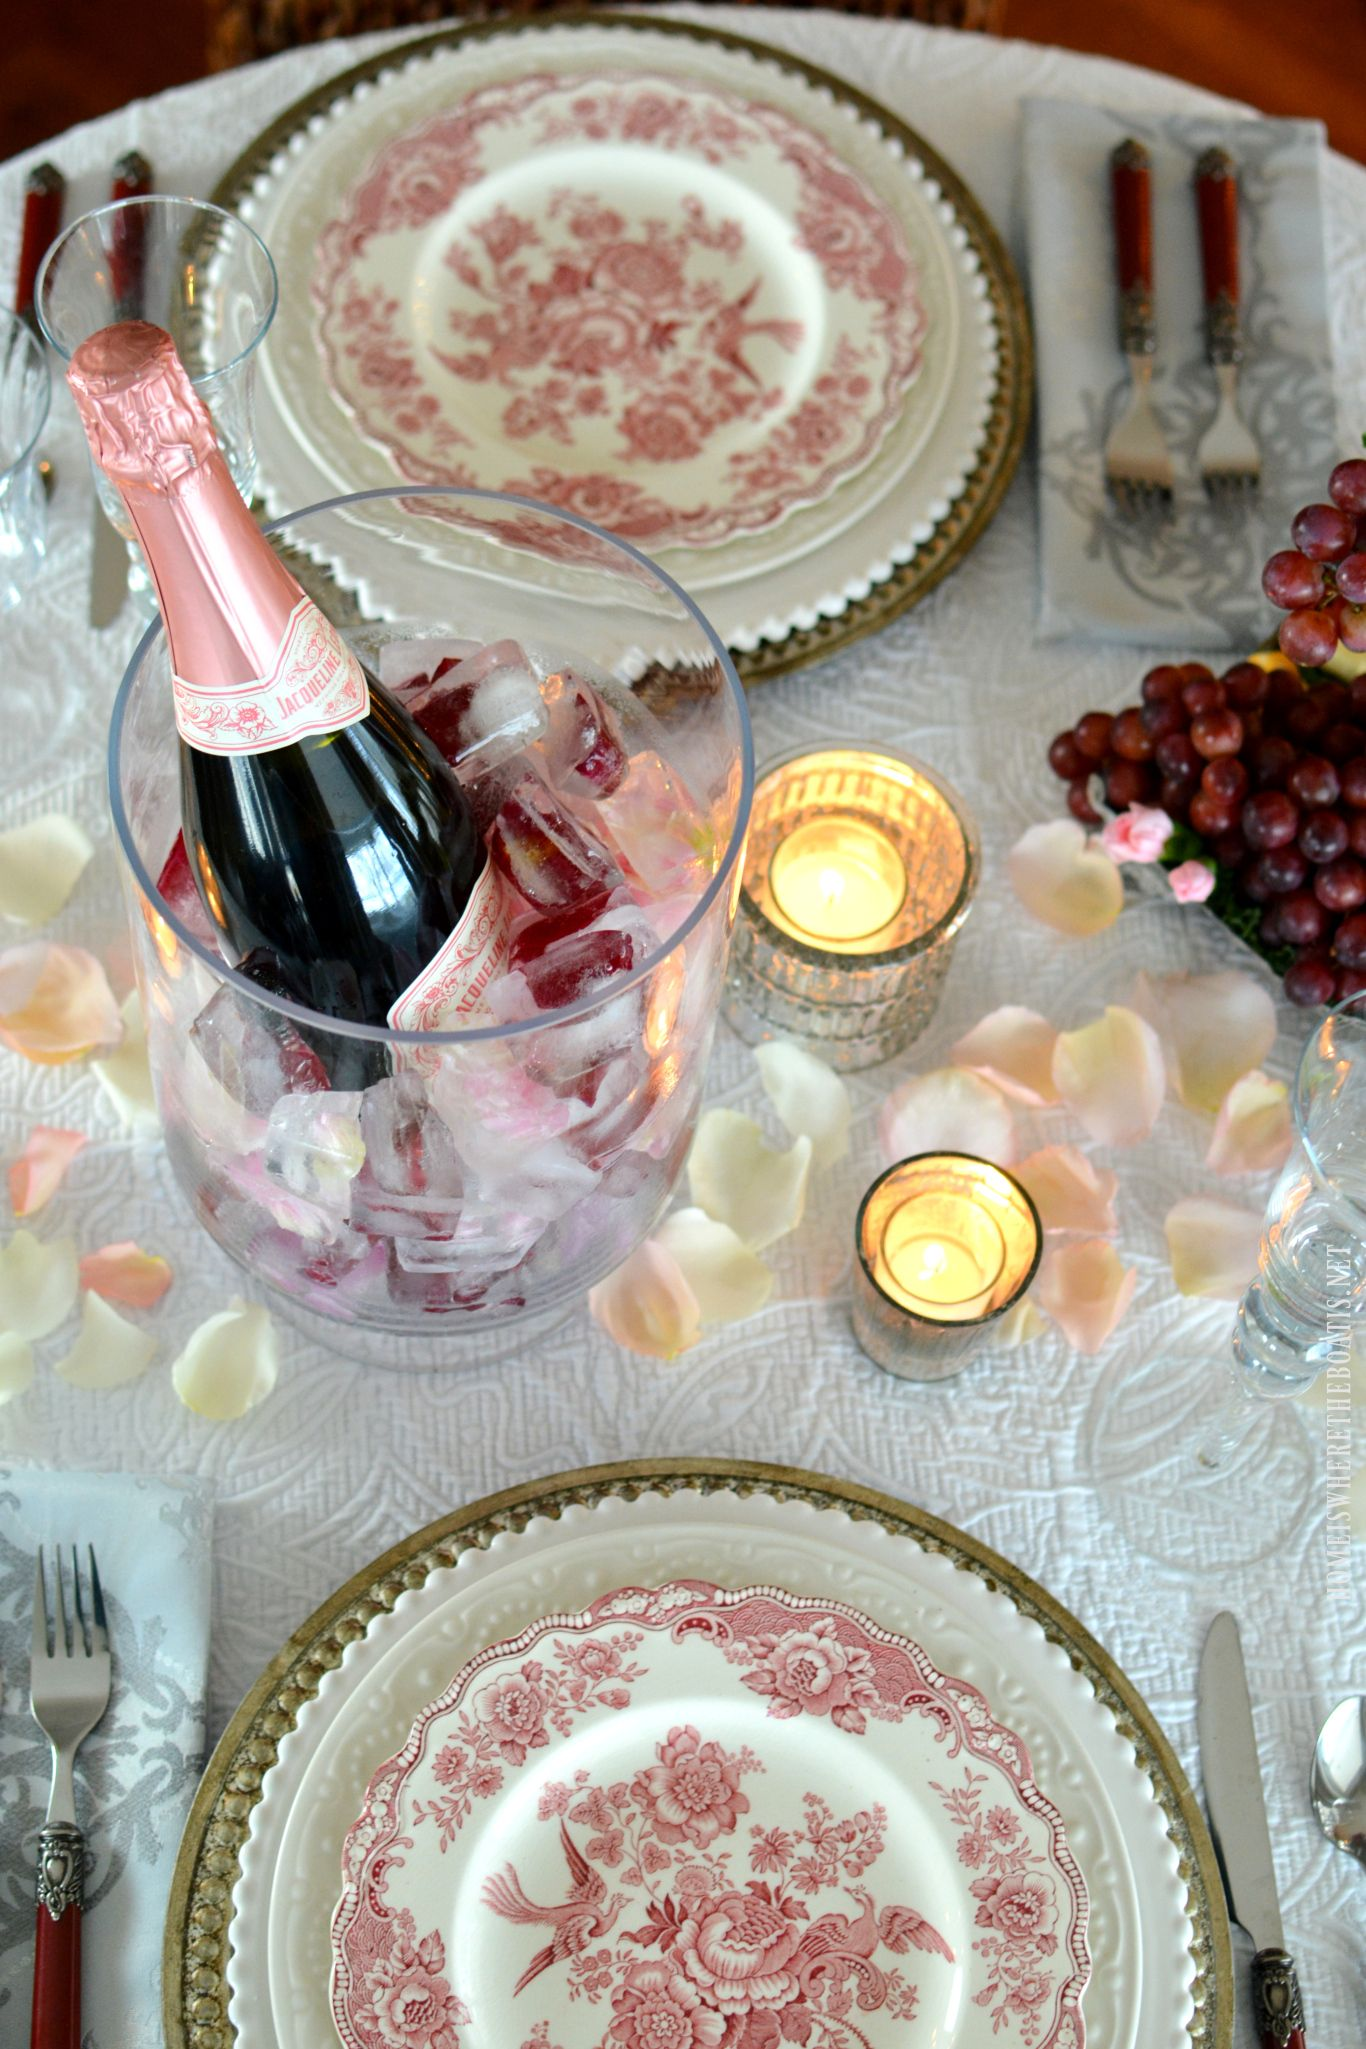 Romantic Table for Two for Valentineu0027s Day with rose petals and floral ice cubes for ch&agne & Romantic Table for Two for Valentineu0027s Day with rose petals and ...